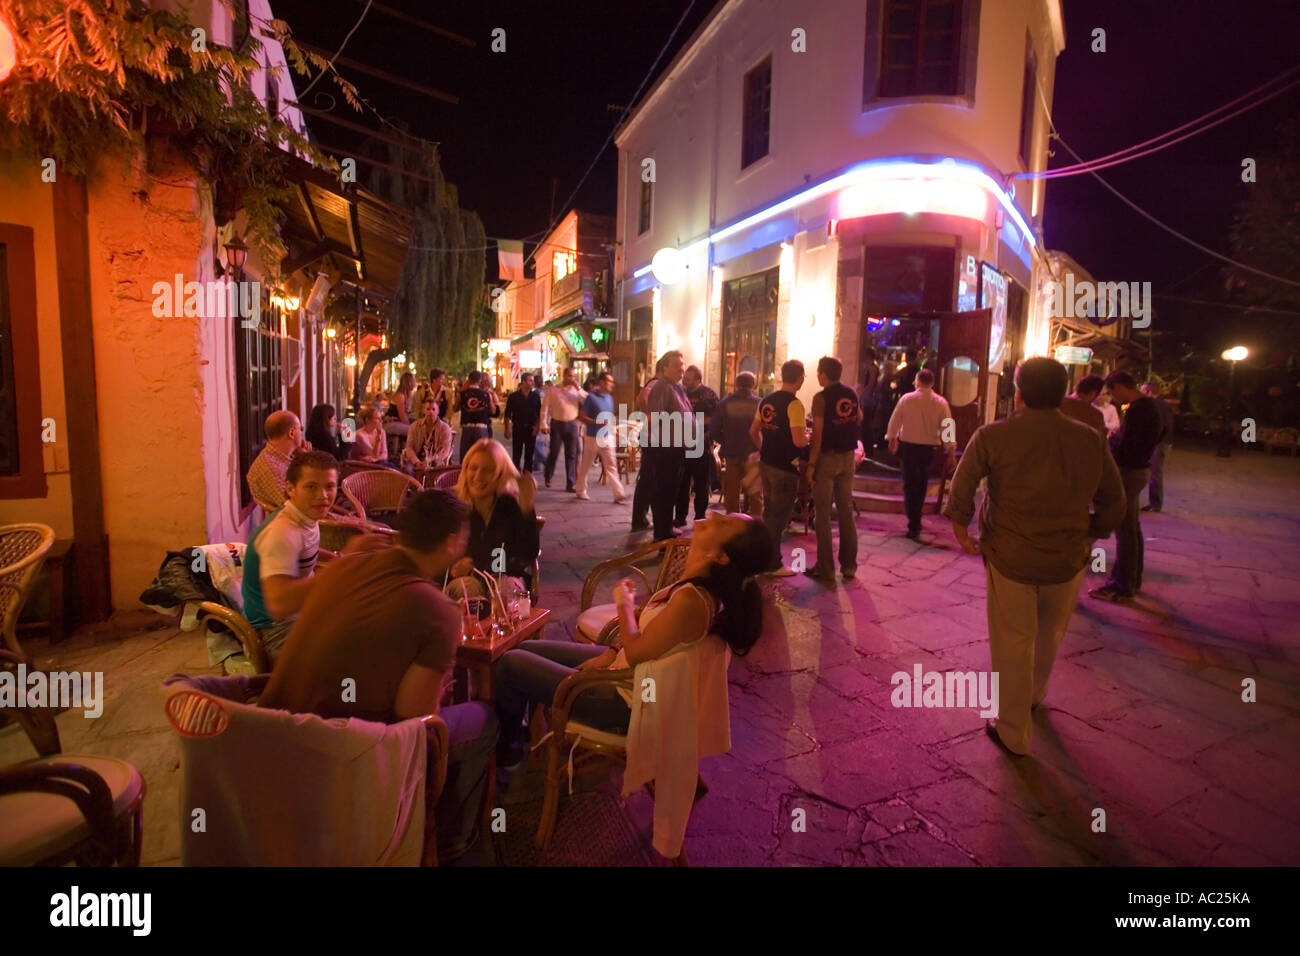 Gallery images and information kos greece nightlife - Stock Photo View Inside Busy Bar Street With A Lof Of Cafes And Bars At Night Kos Town Kos Greece